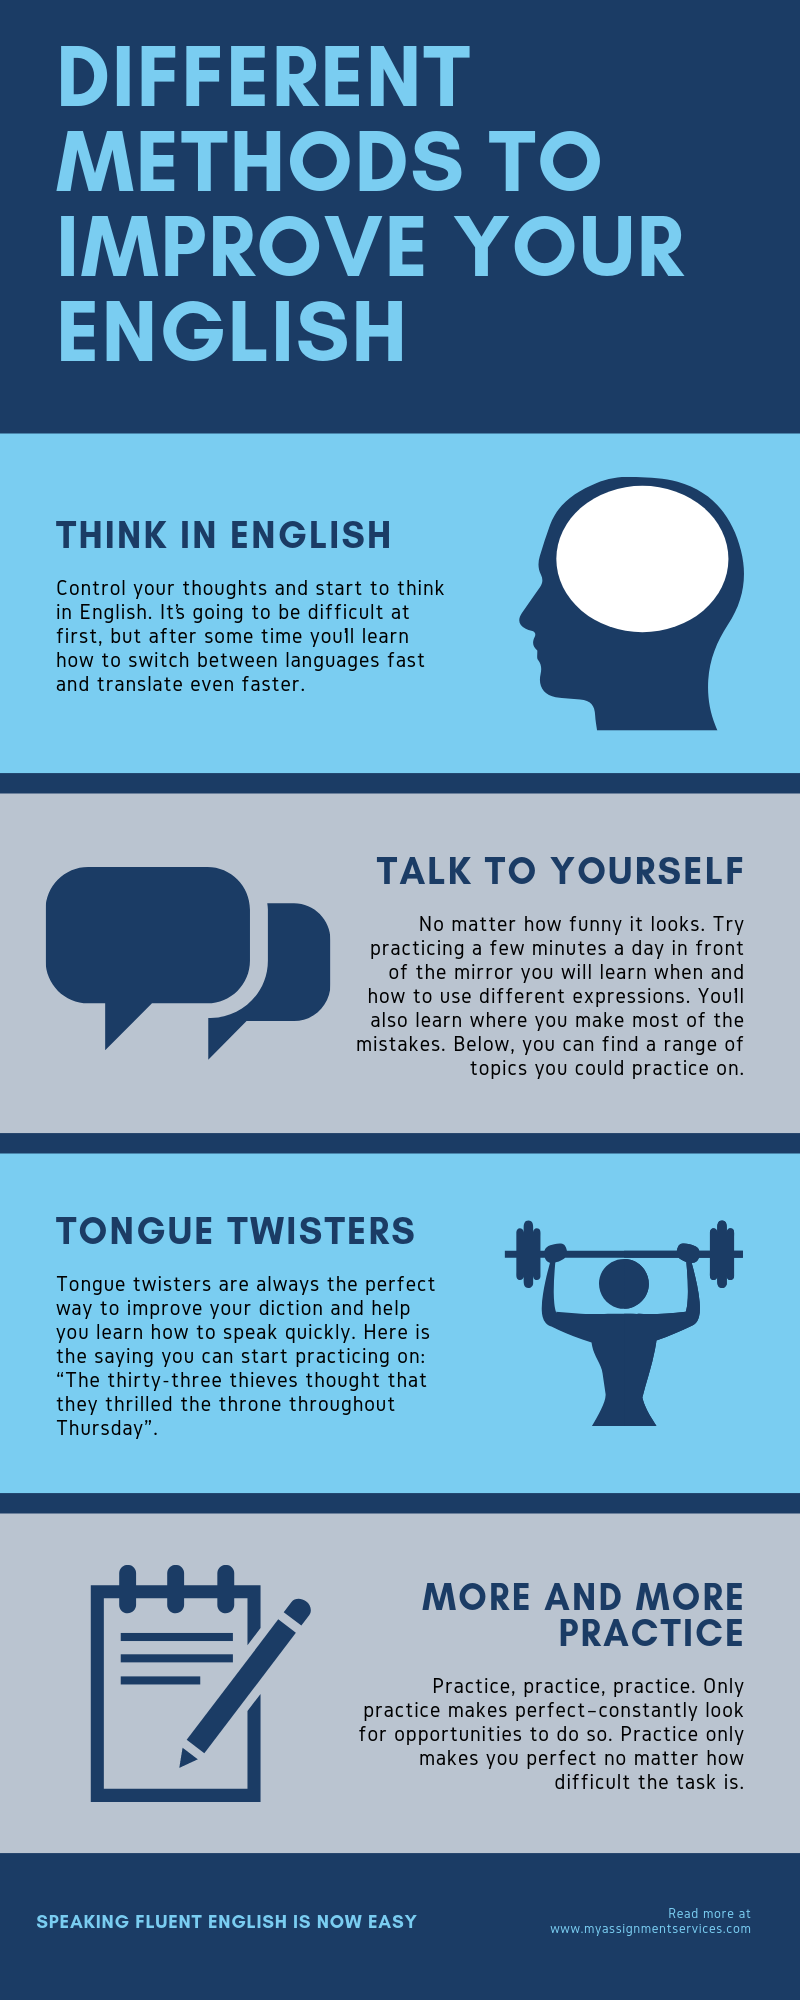 DIFFERENT METHODS TO IMPROVE YOUR ENGLISH